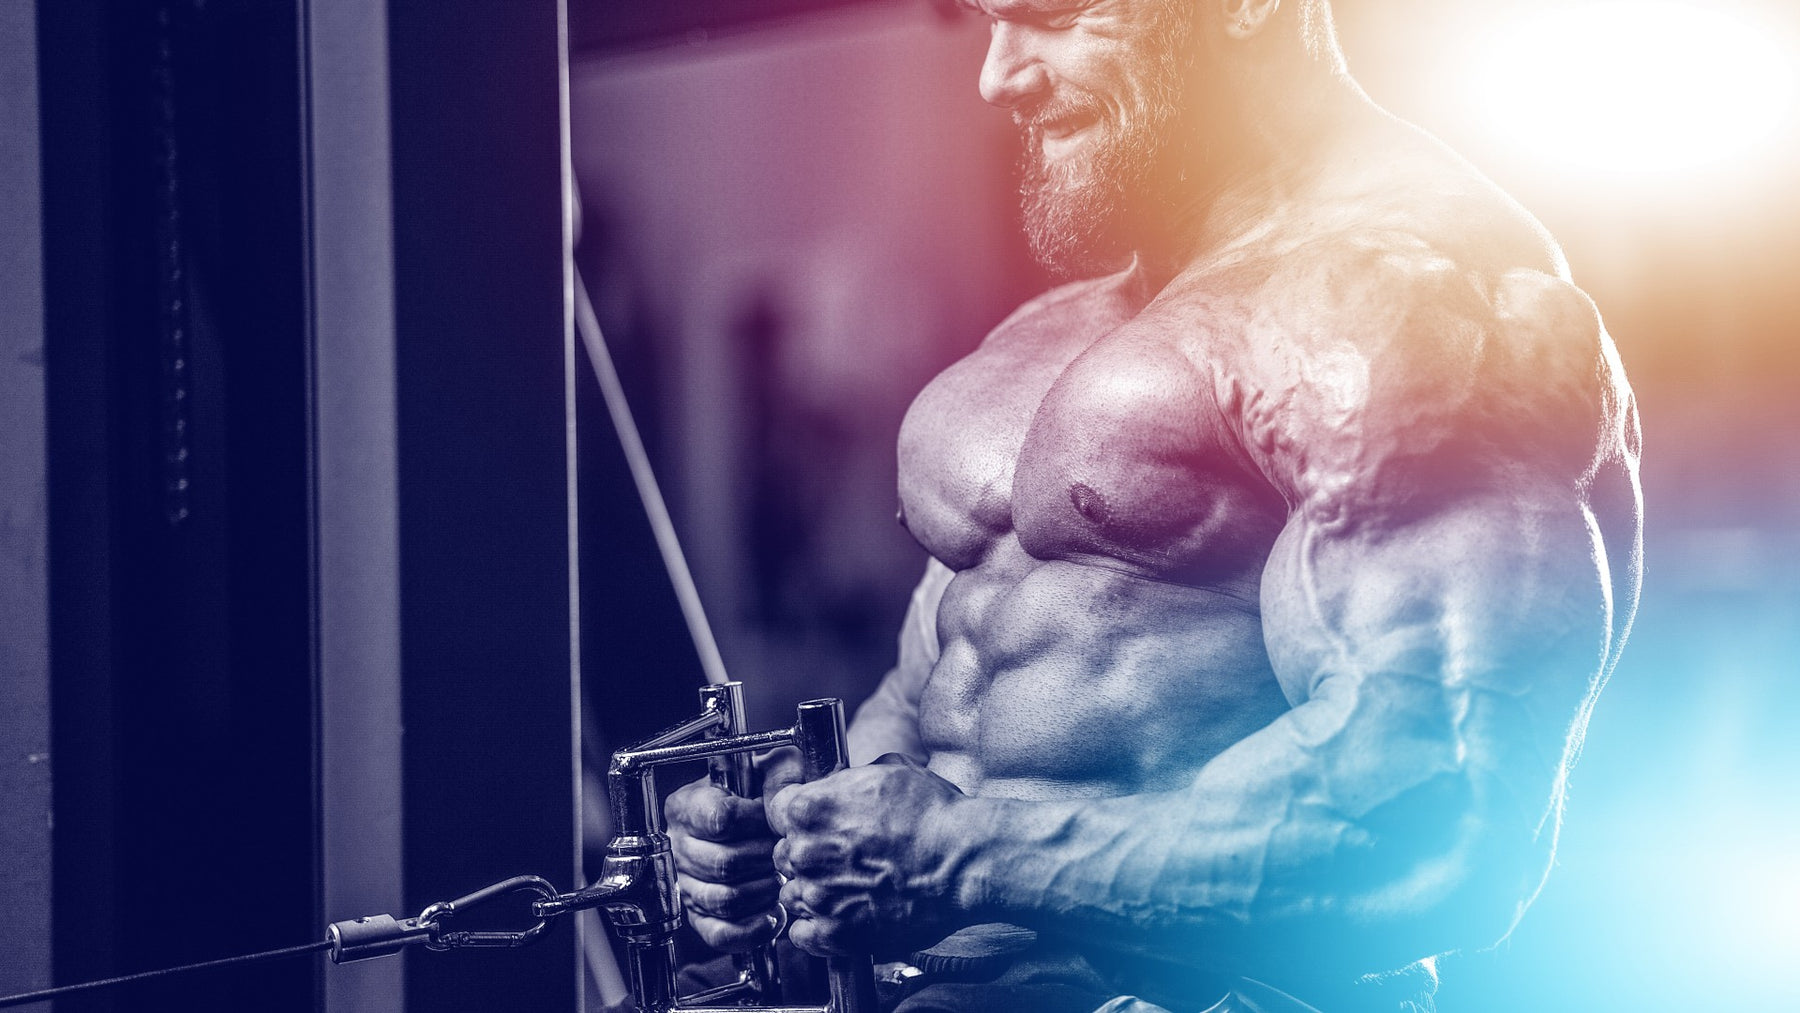 Cerberus Training - The 3-Headed Muscle Building Workout System